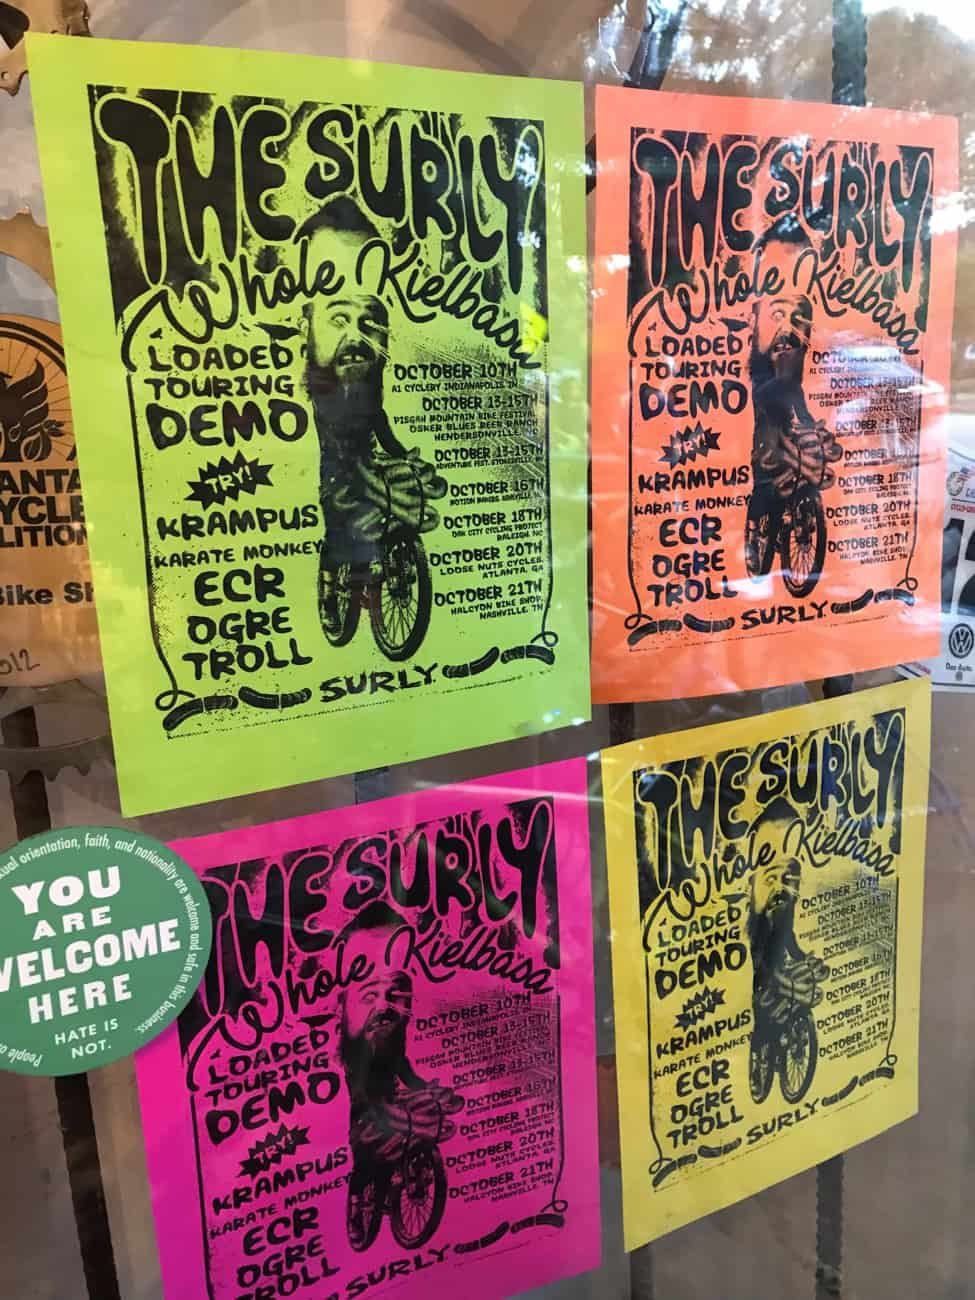 Four colorful 'The Surly Whole Kielbasa', flyers taped to a store front window